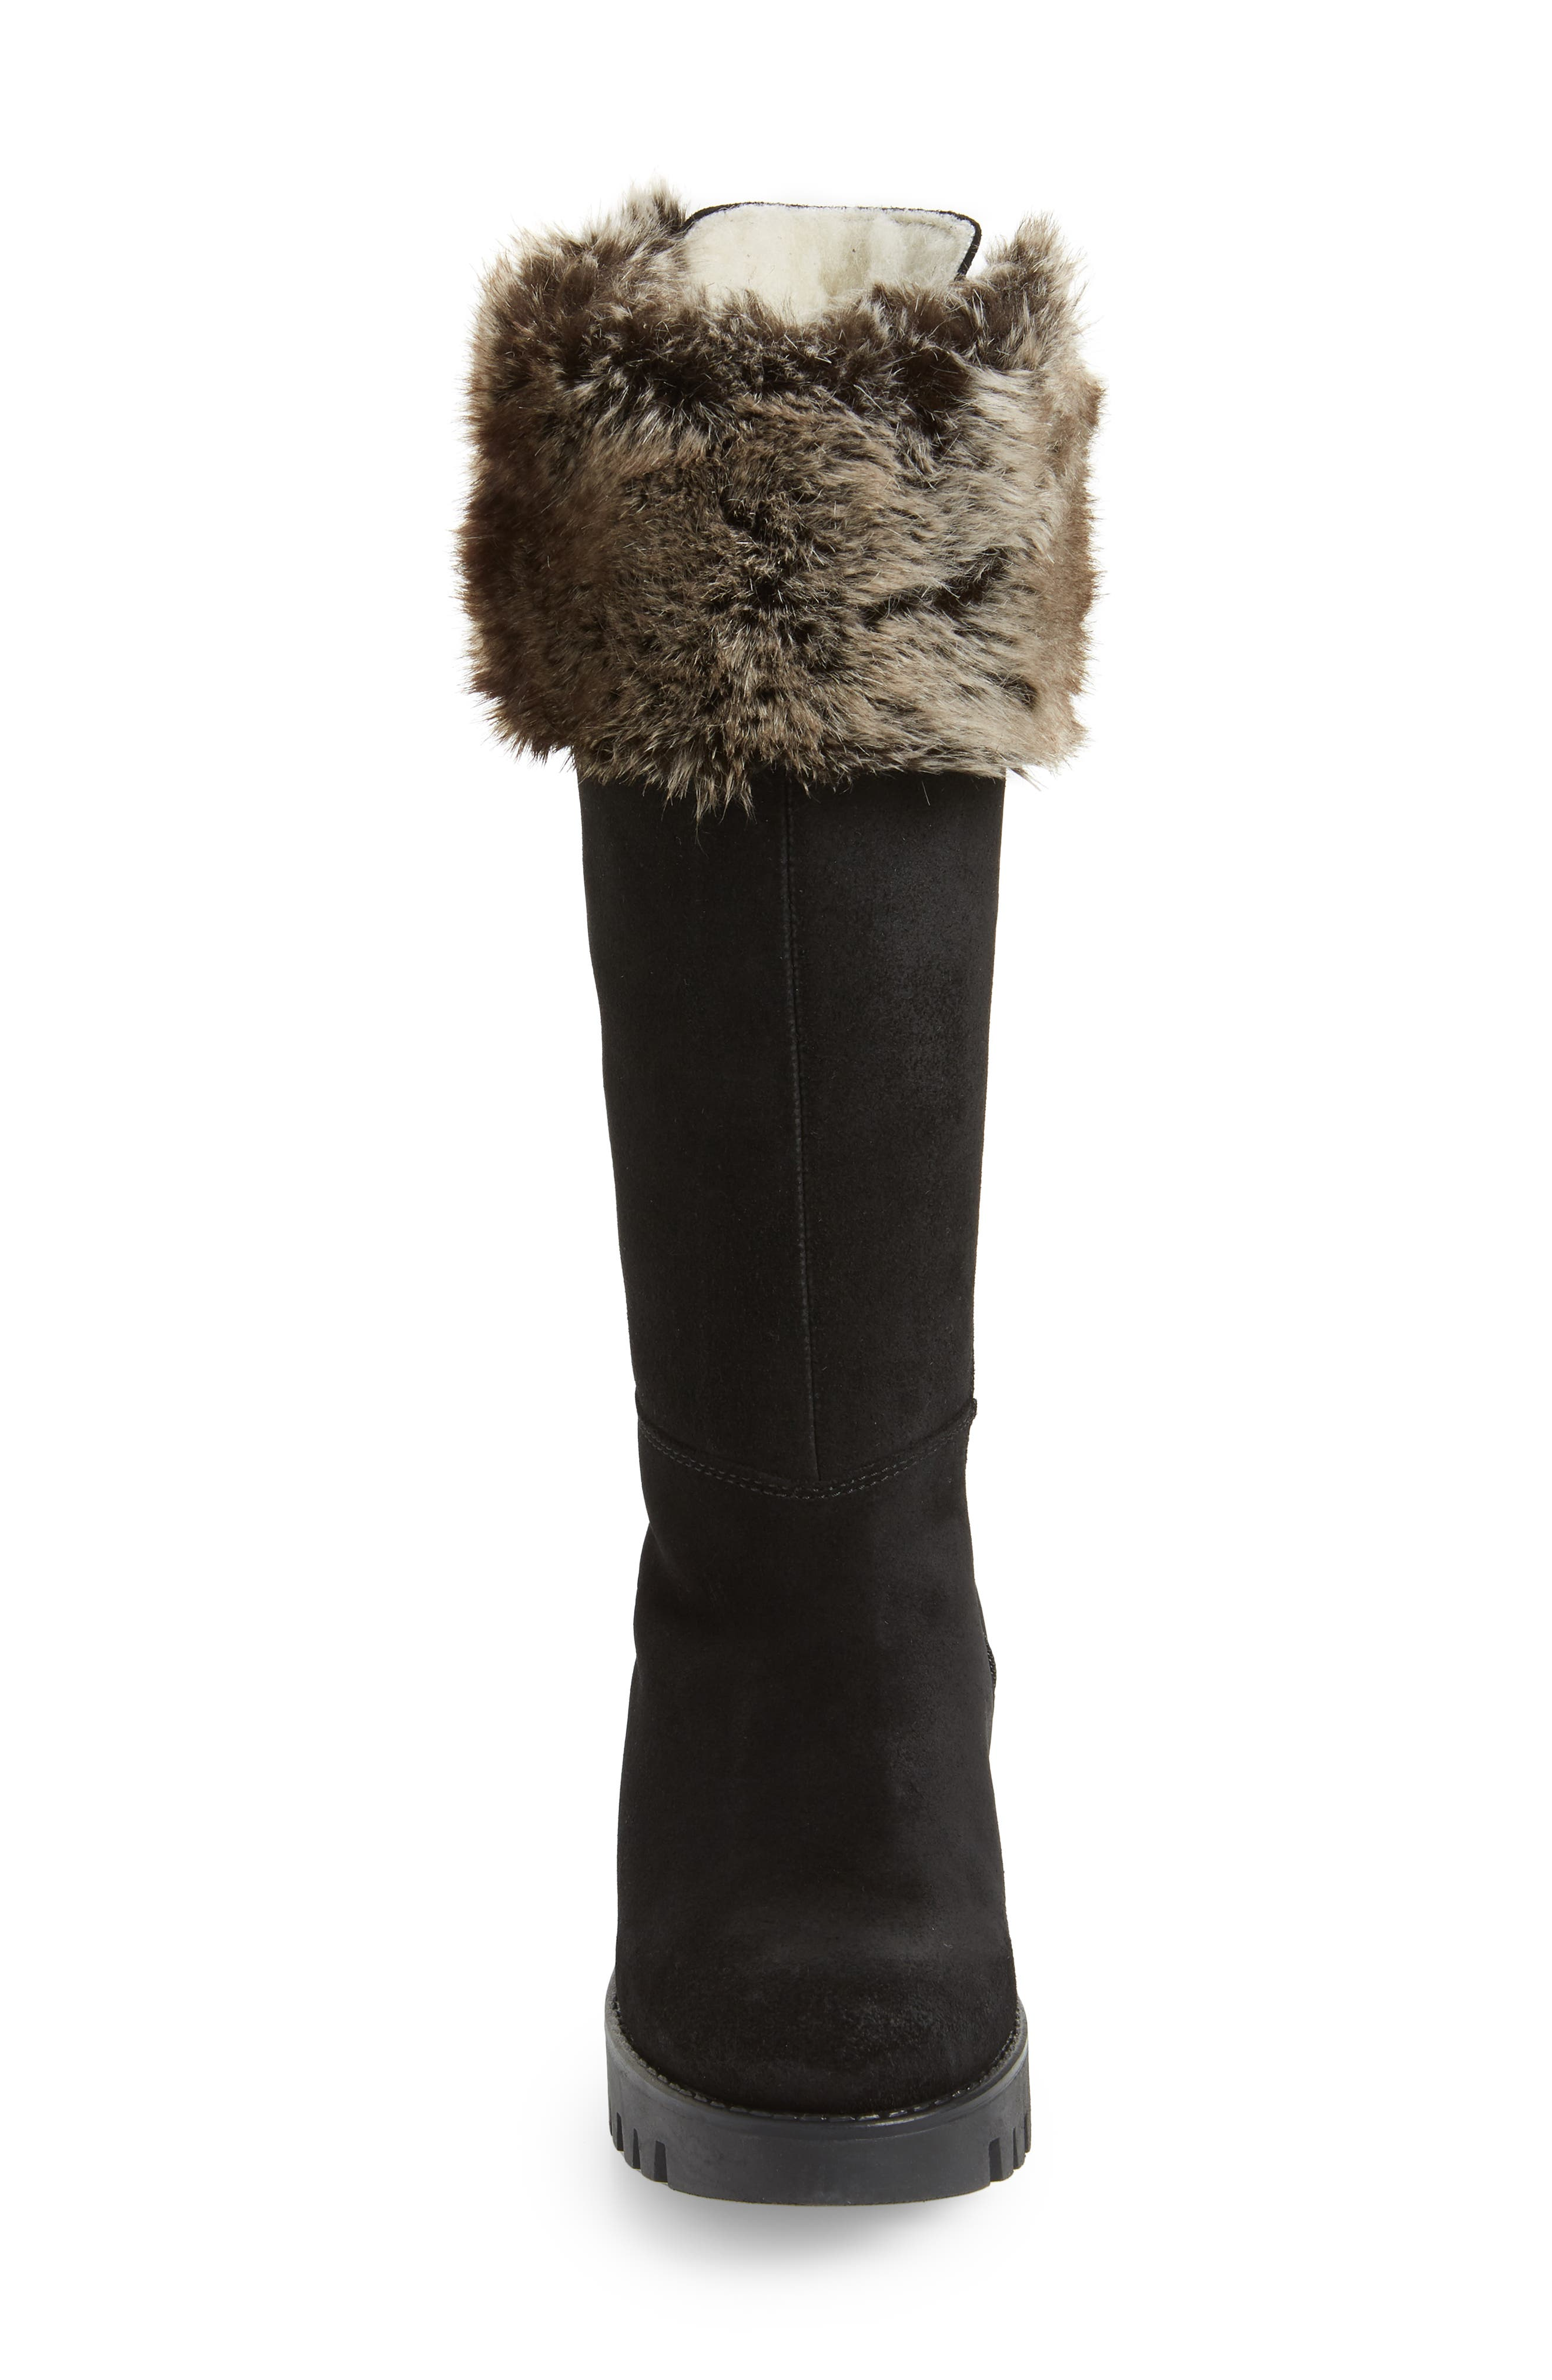 BOS. & CO., Graham Waterproof Winter Boot with Faux Fur Cuff, Alternate thumbnail 4, color, BLACK SUEDE